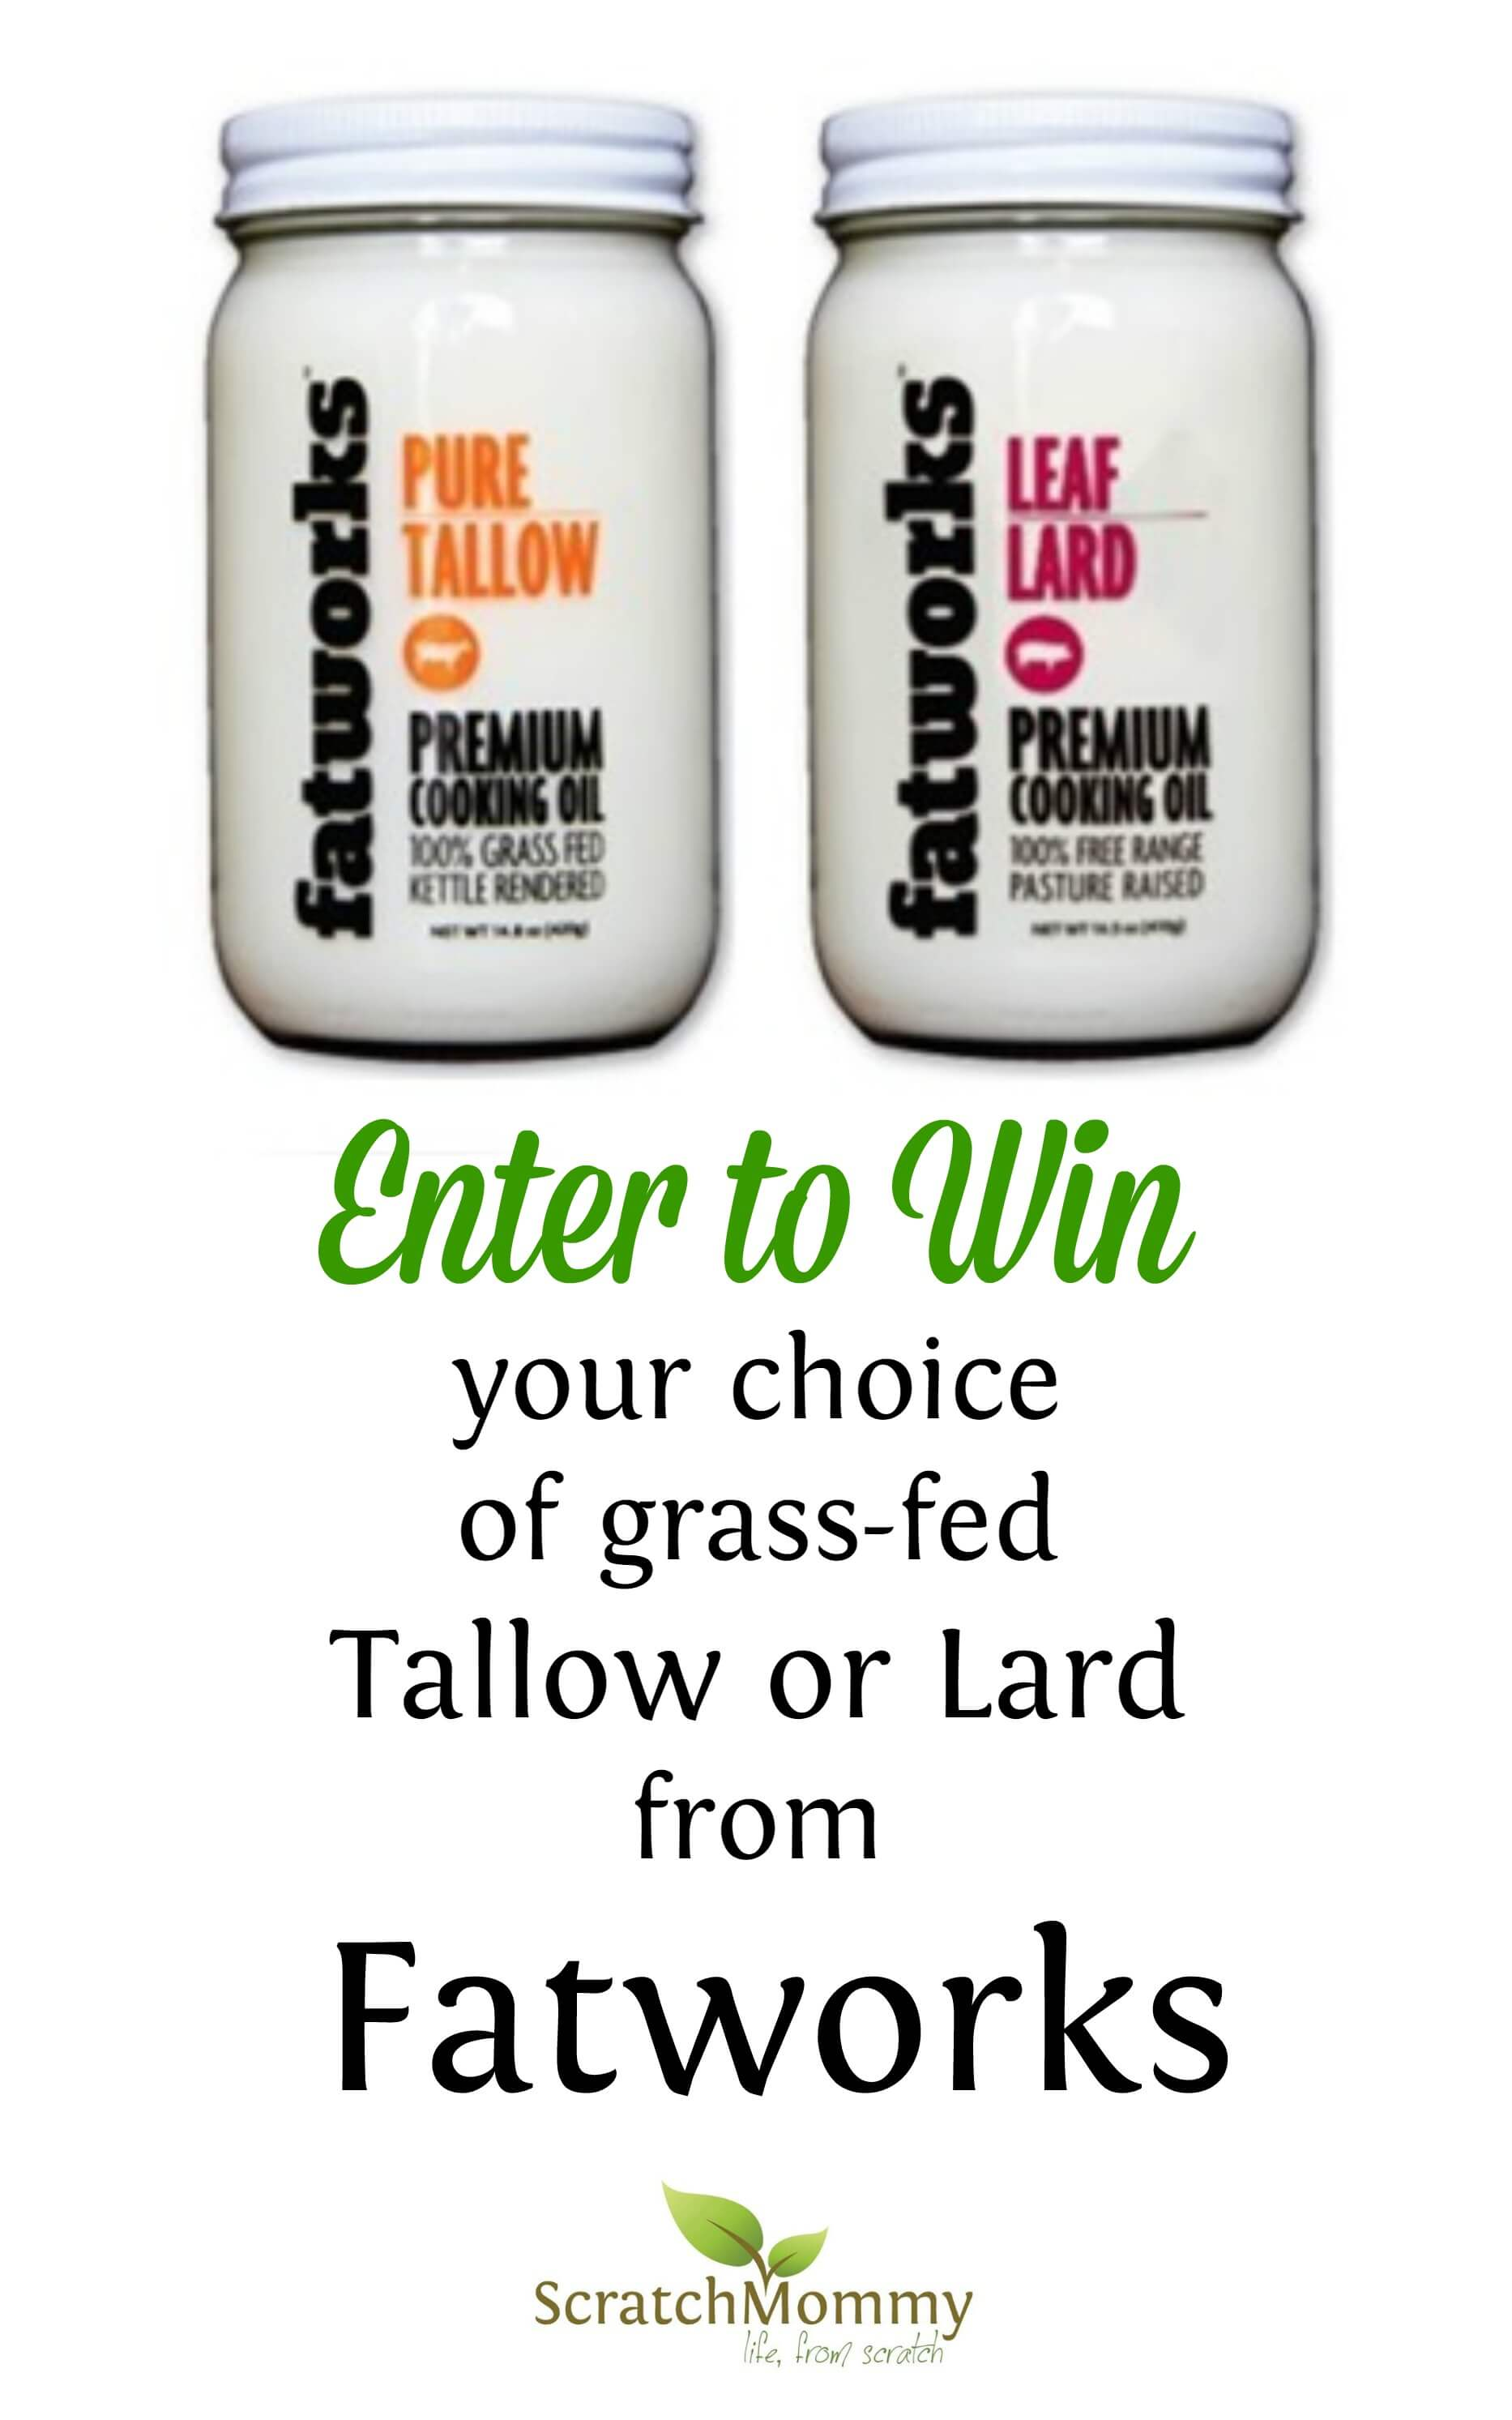 Day 3 of our giveaways in celebration of the Scratch Mommy launch. Enter to win your choice of grass-fed lard or tallow from Fatworks!